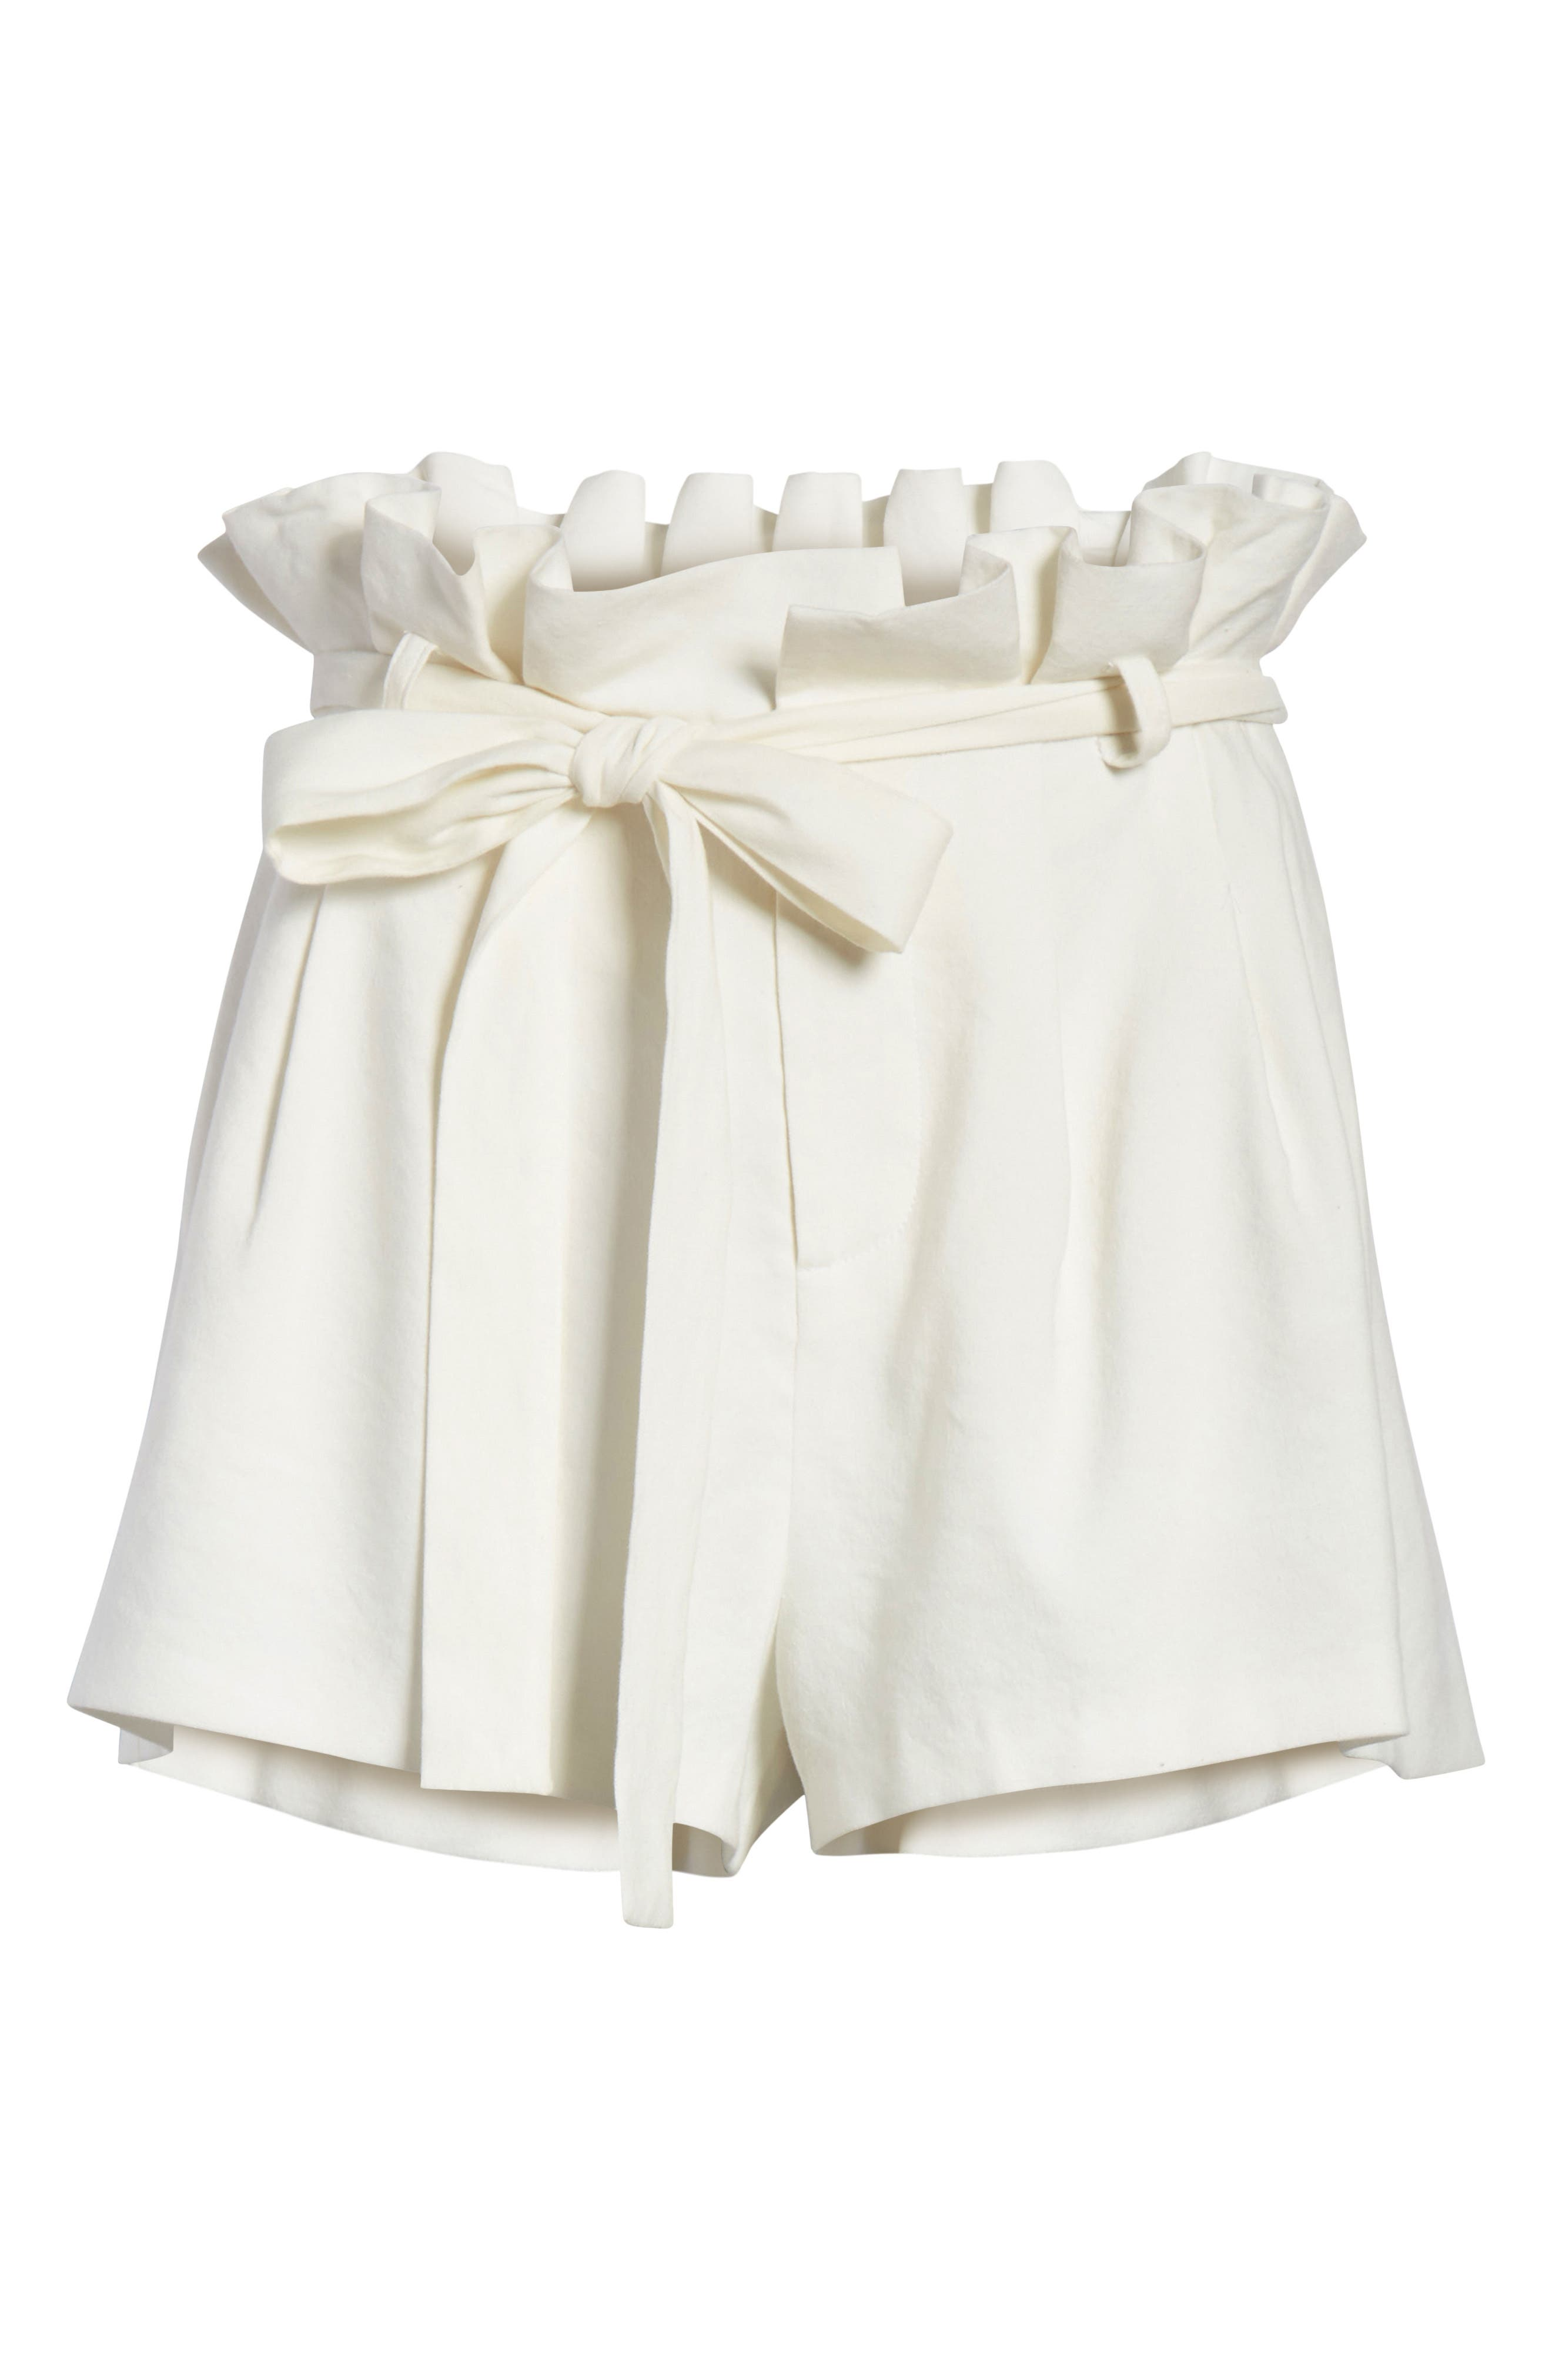 Laurine Paperbag Shorts,                             Alternate thumbnail 6, color,                             Off White